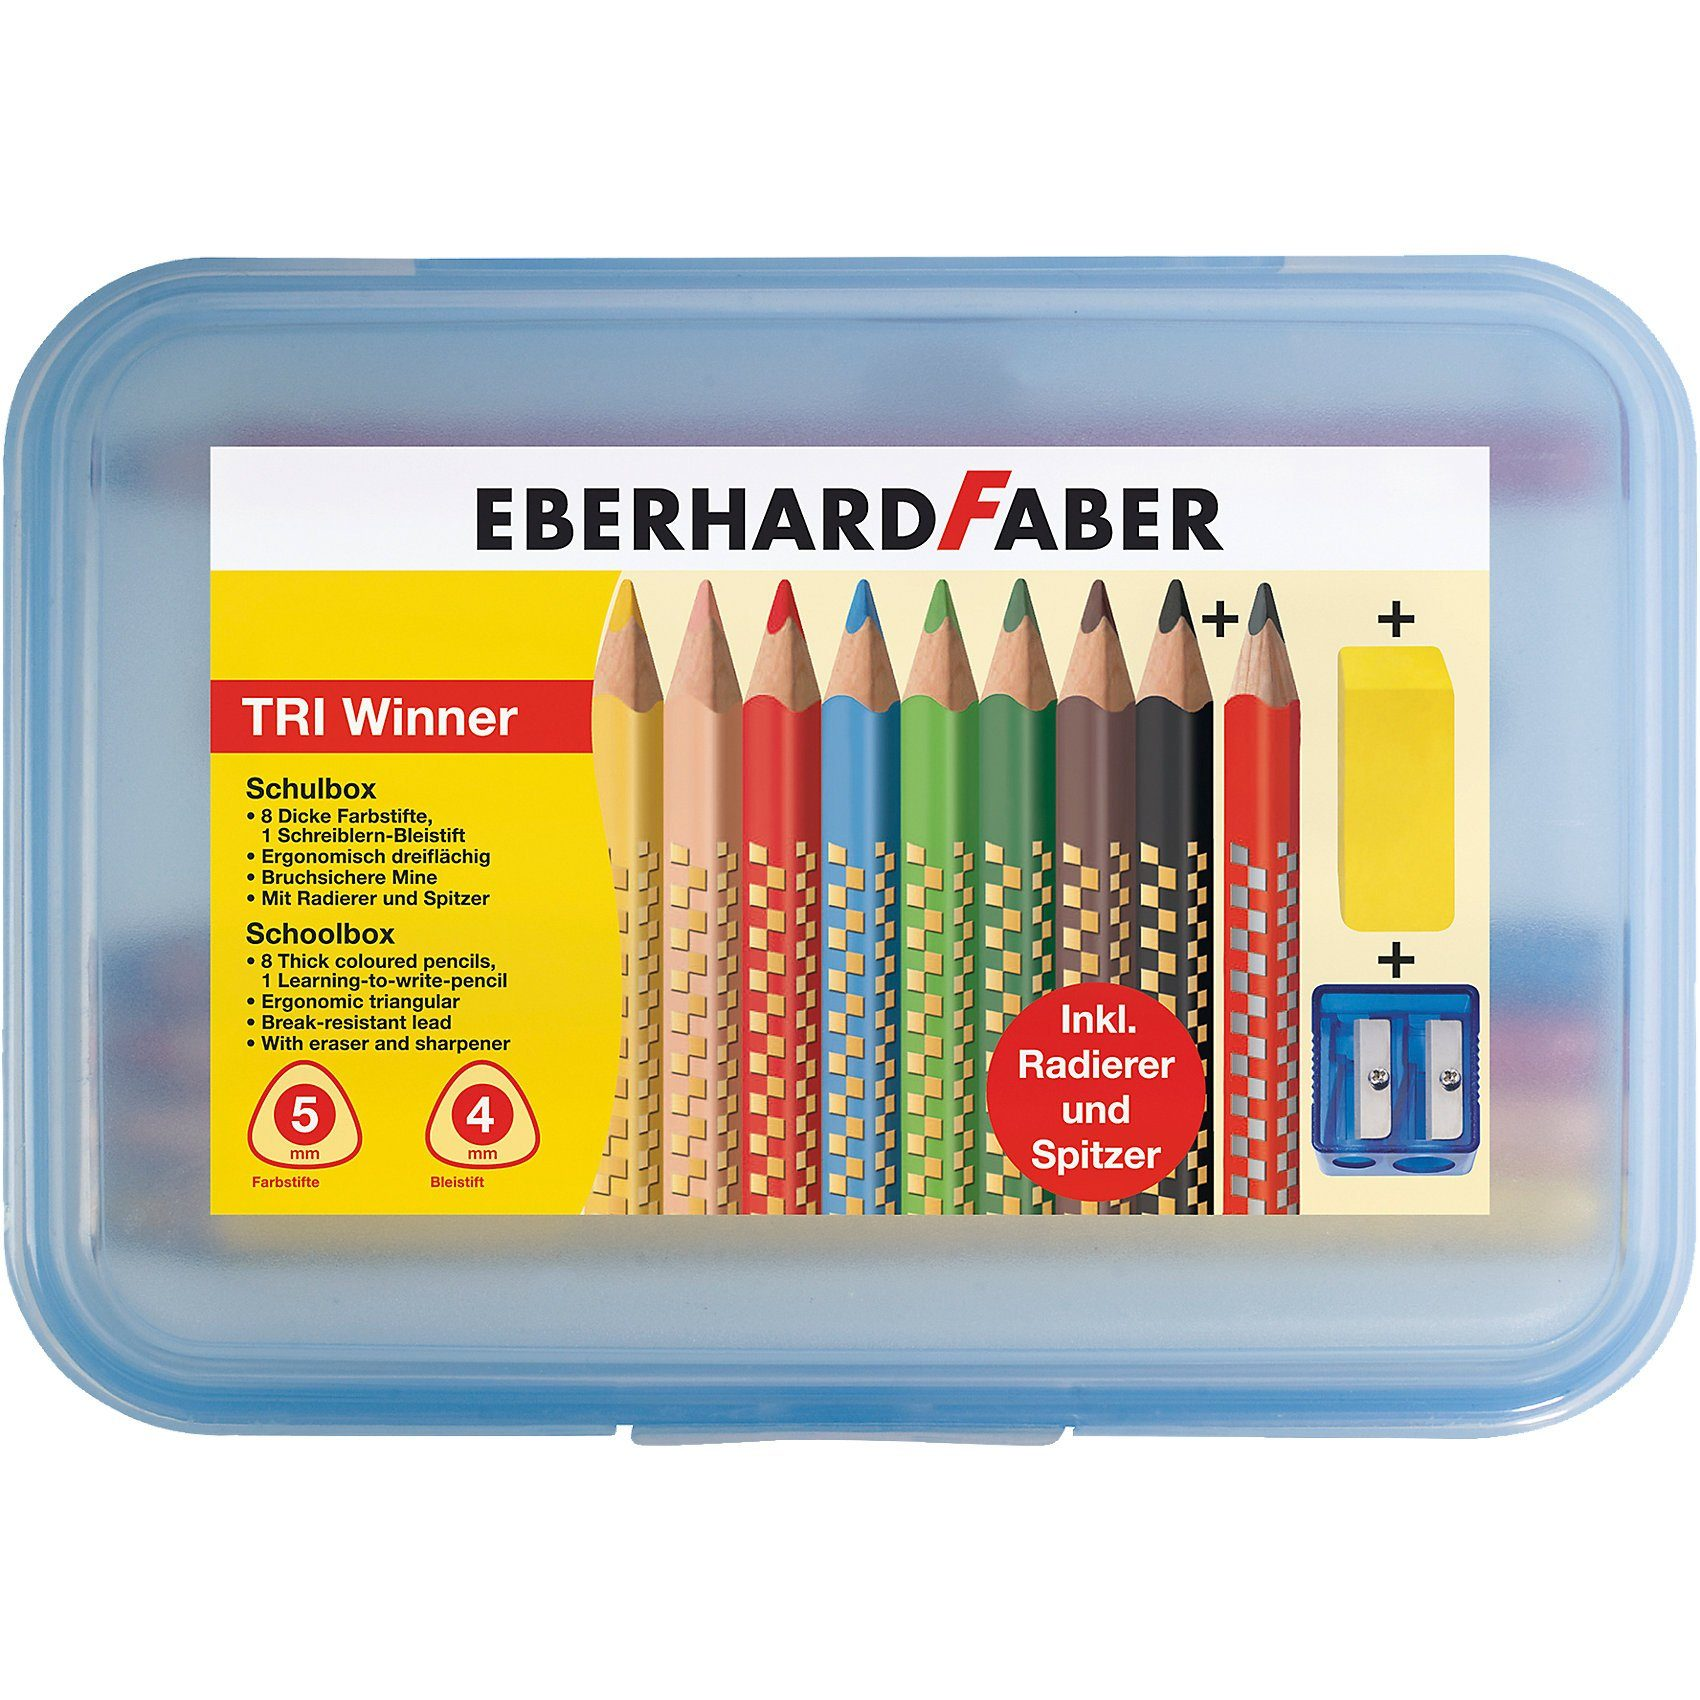 Eberhard Faber Buntstiftebox TRI Winner, 11-tlg.